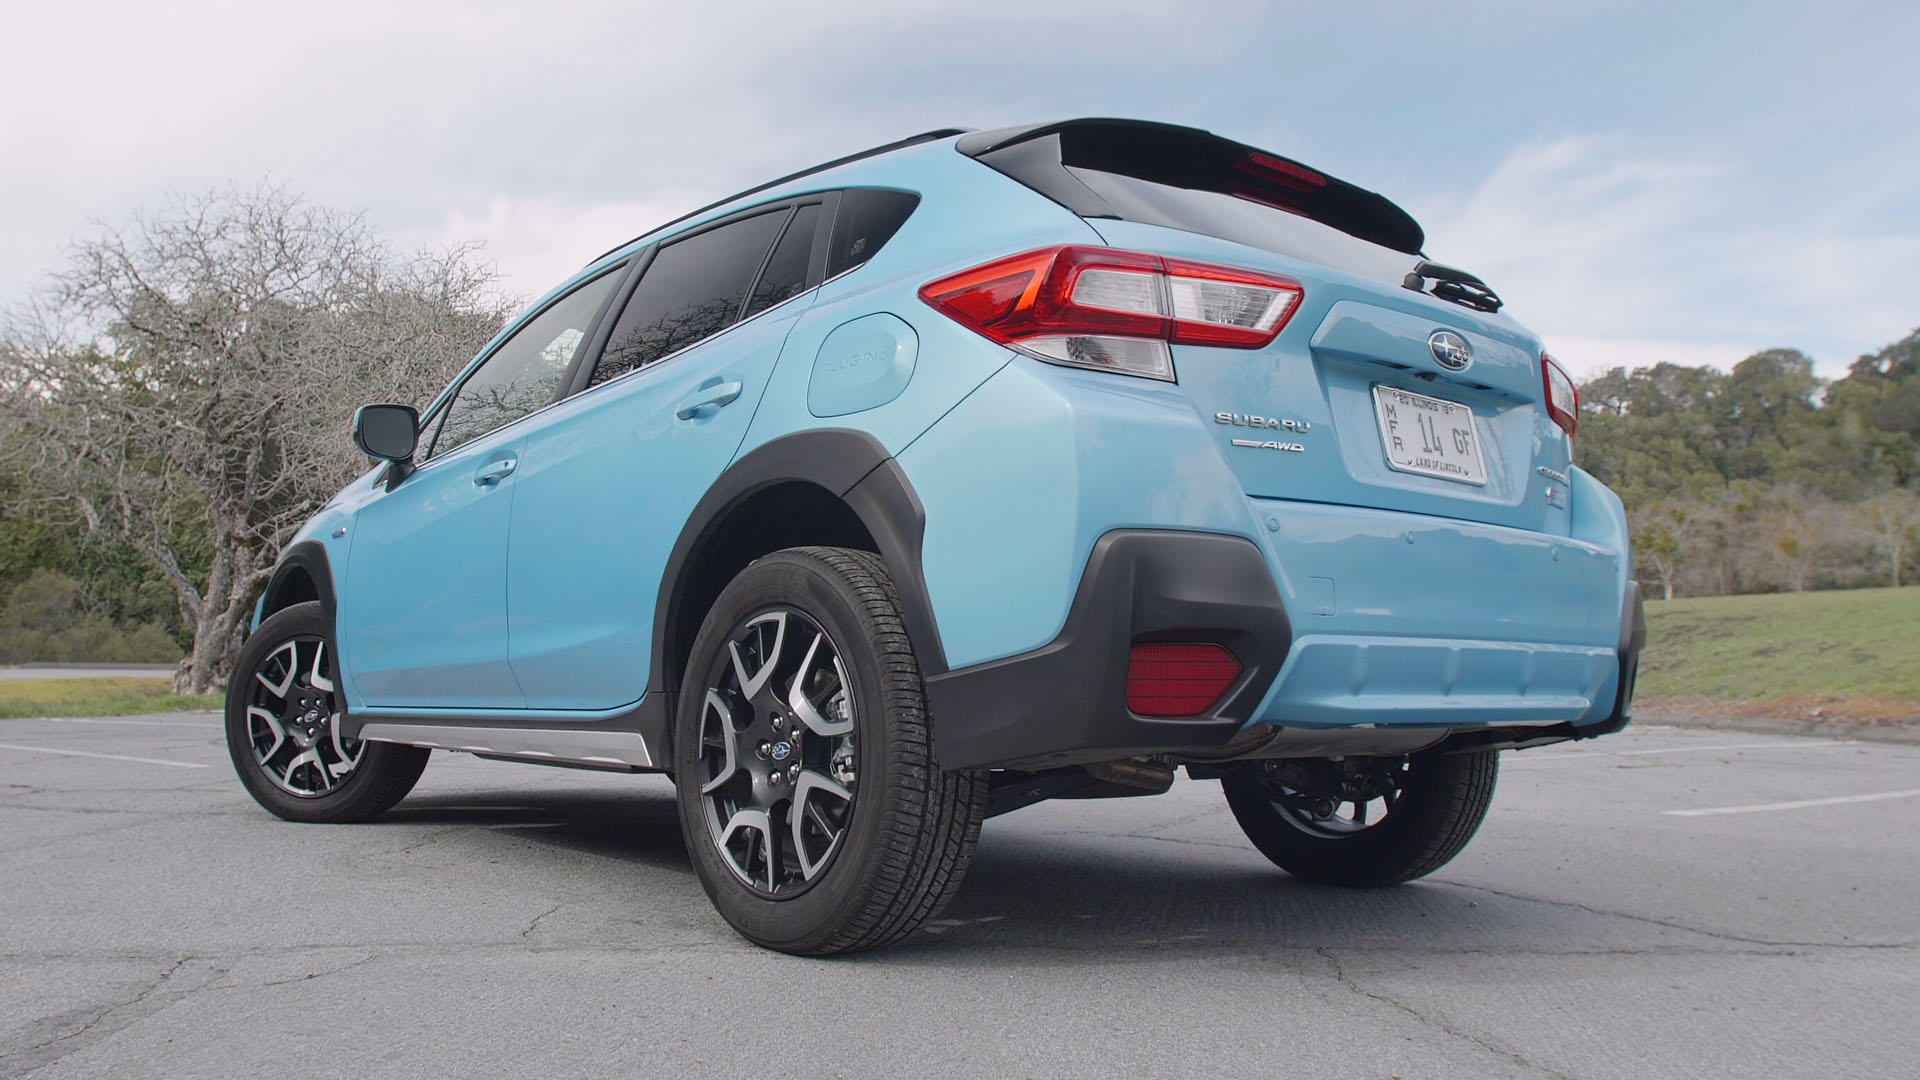 Video: 2019 Subaru Crosstrek plug-in hybrid gives up a lot for a few miles per gallon